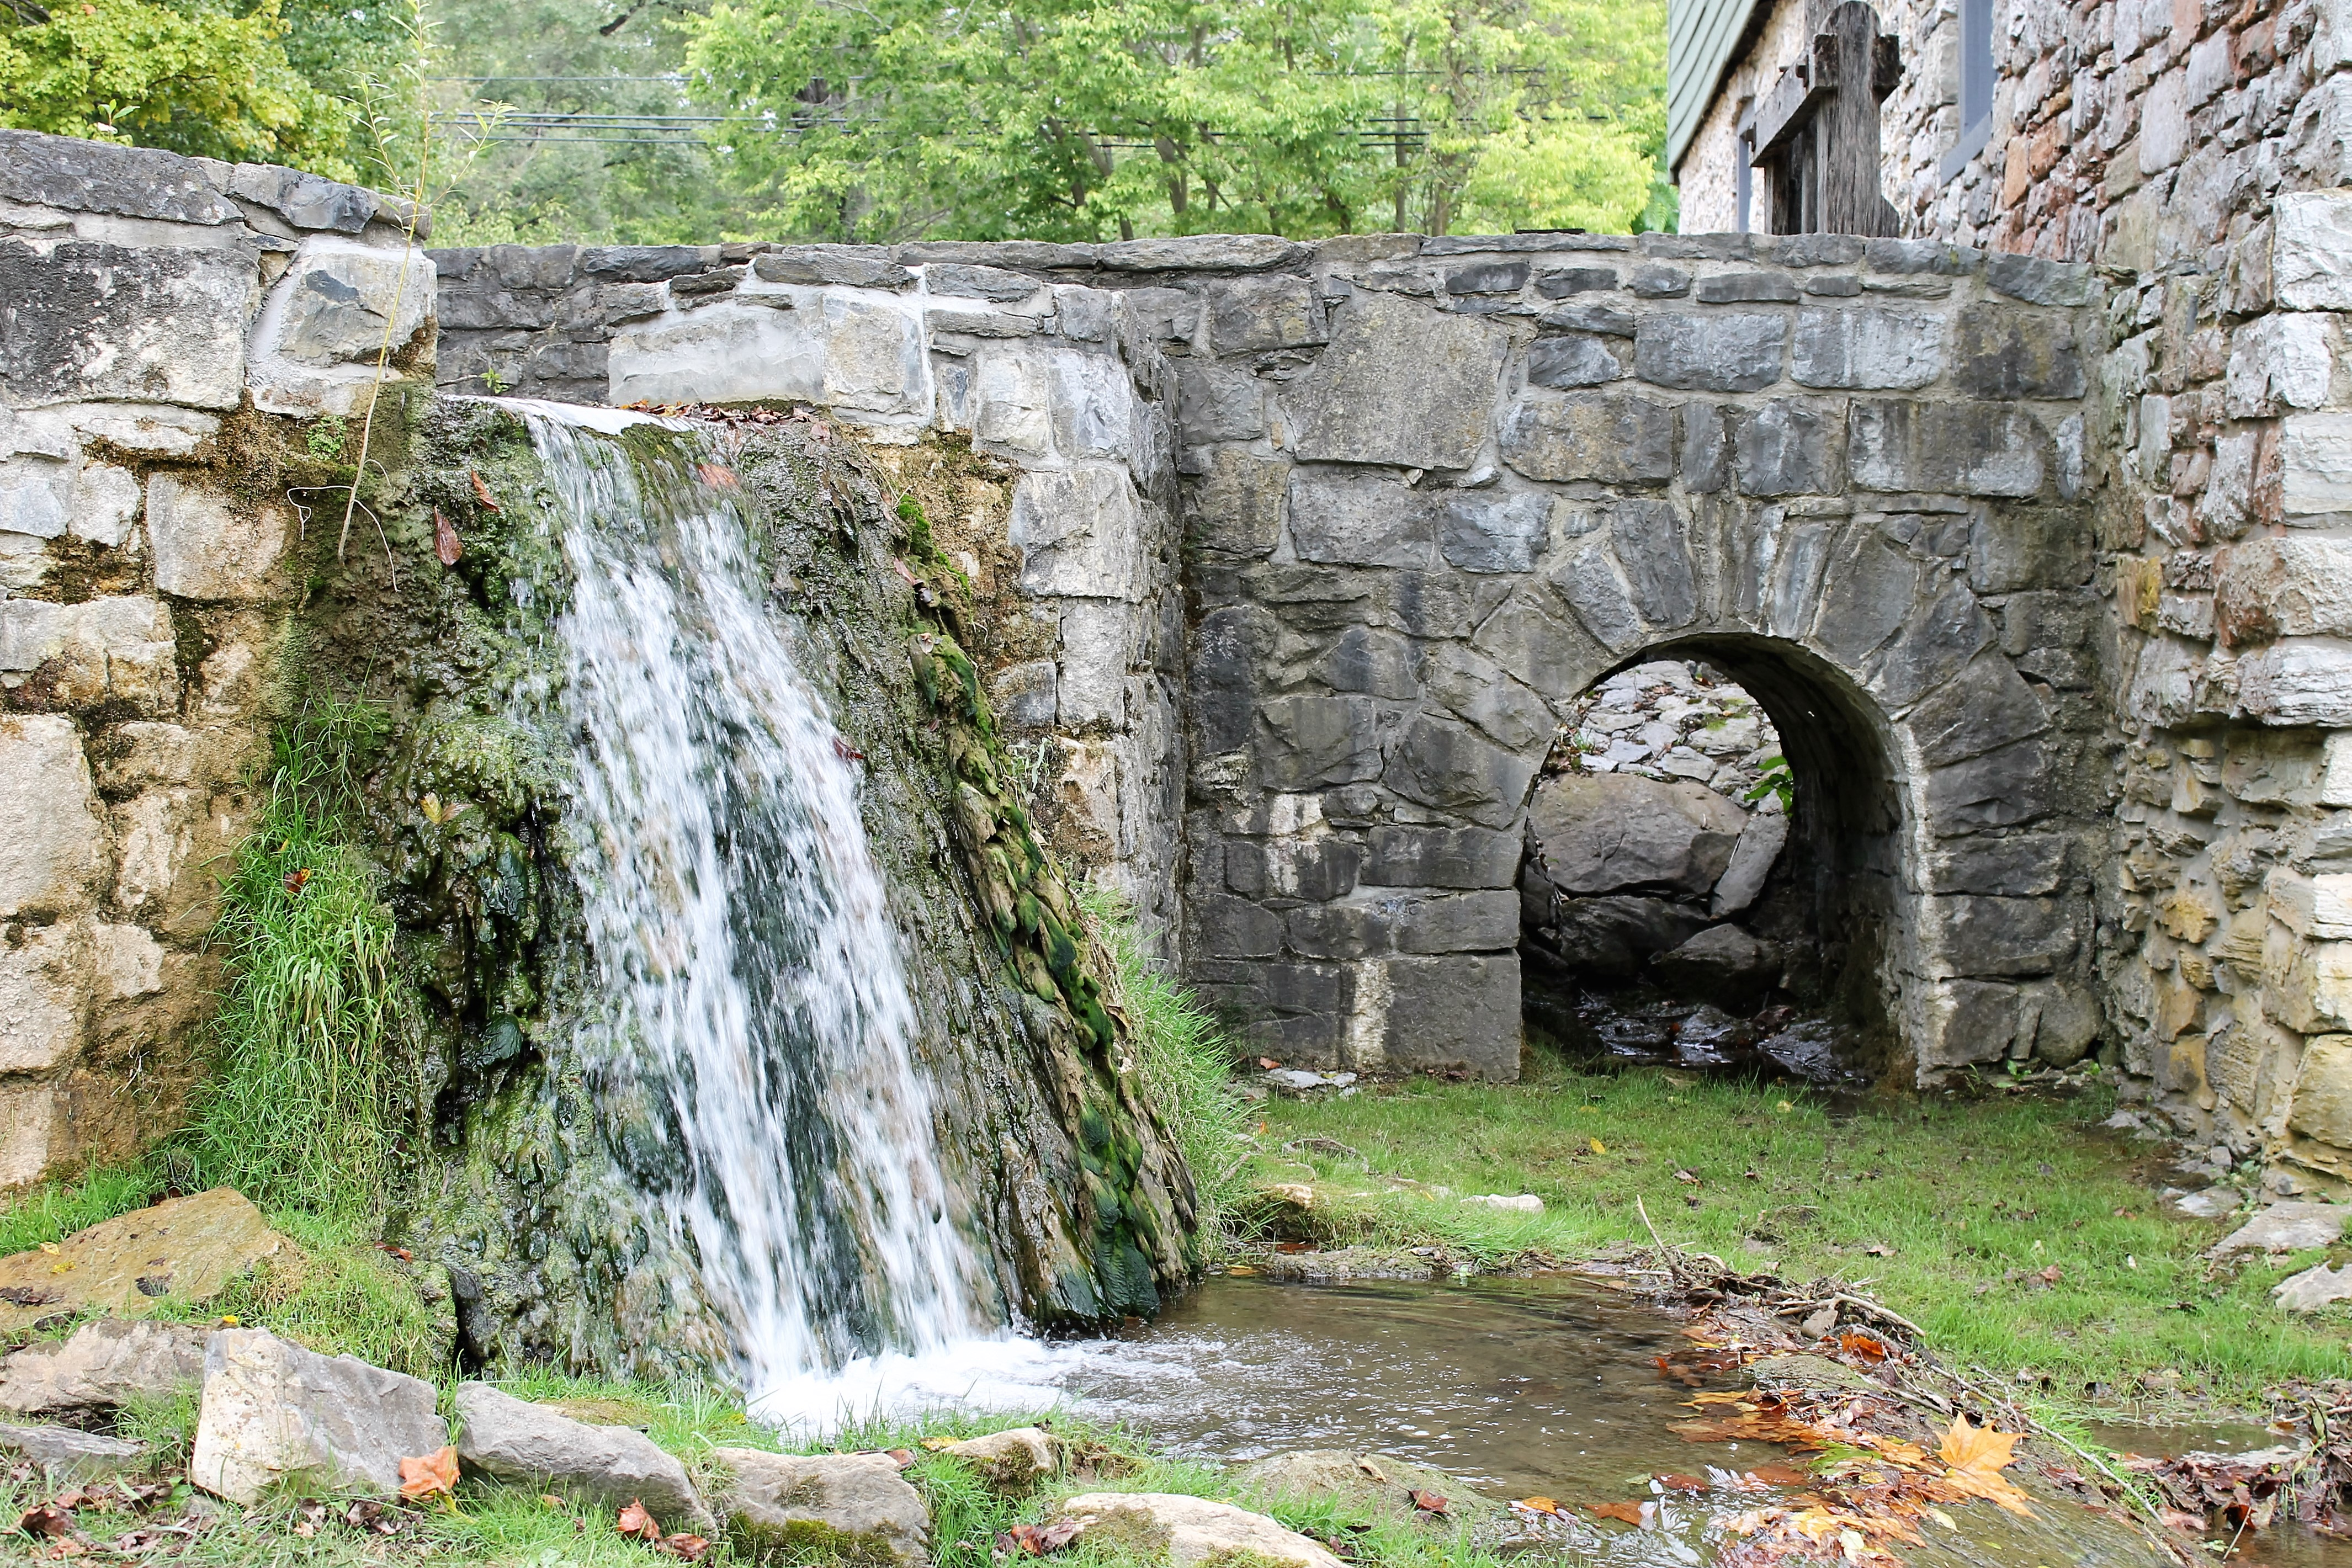 grist mill works